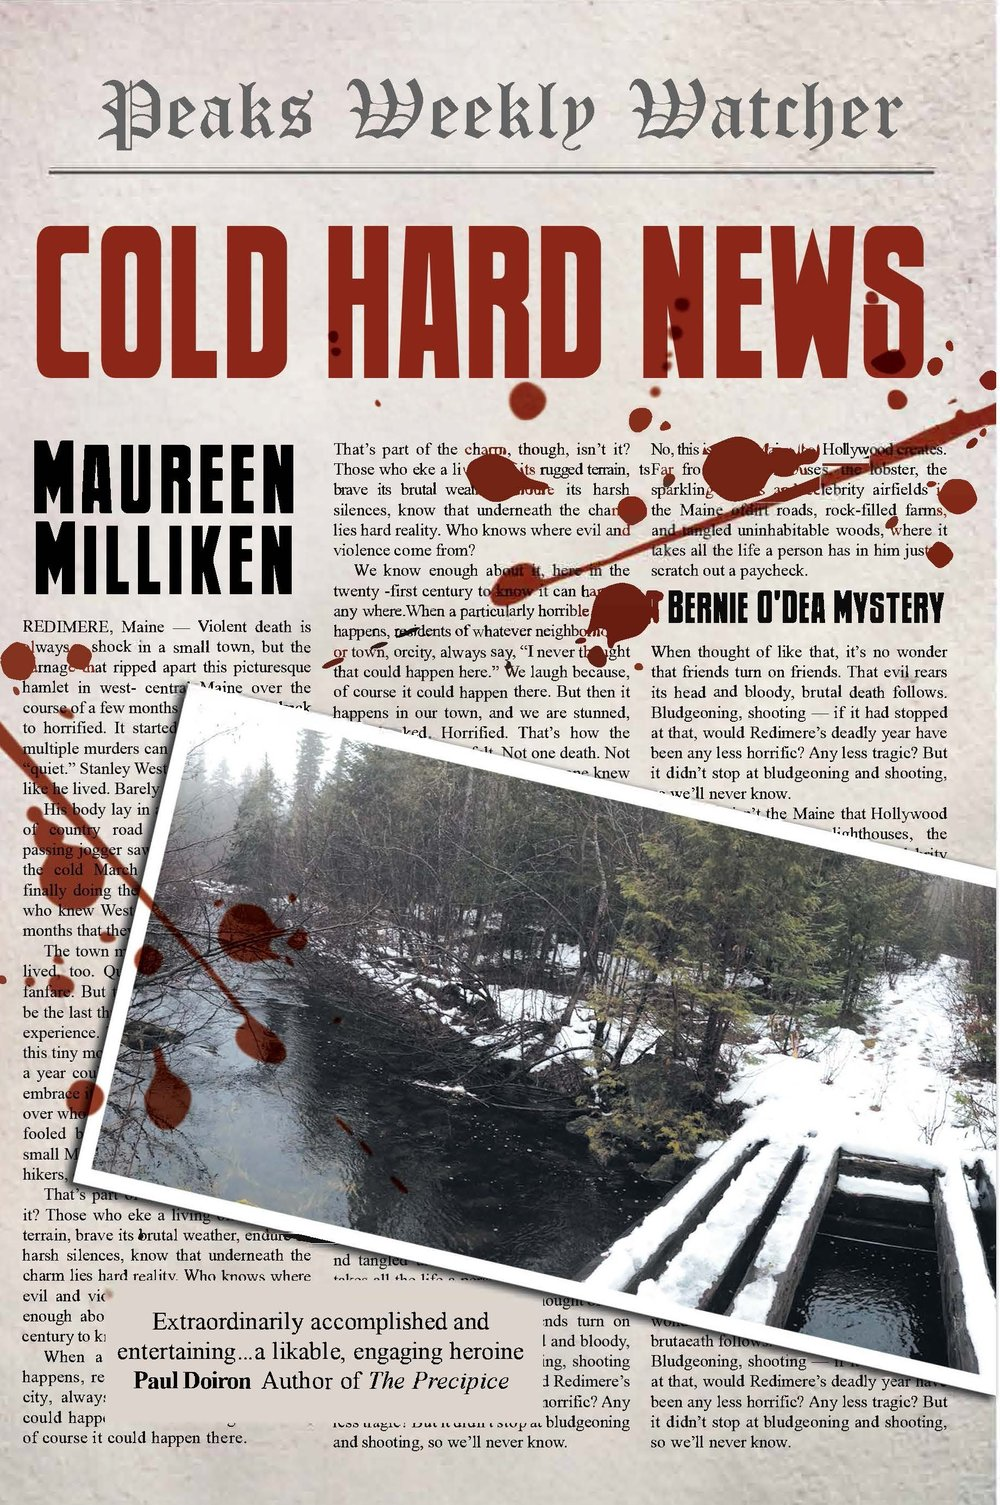 A cold death… - When the snow in a small Maine town starts to melt, the town's secrets begin to emerge. Bernie O'Dea, the editor of the Peaks Weekly Watcher, is jazzed to finally have a big story to cover when a body is found in a melting snowbank. But as spring turns into a long, hot, explosive summer in Redimere, Maine, the story gets bigger — maybe too big for Bernie to handle.